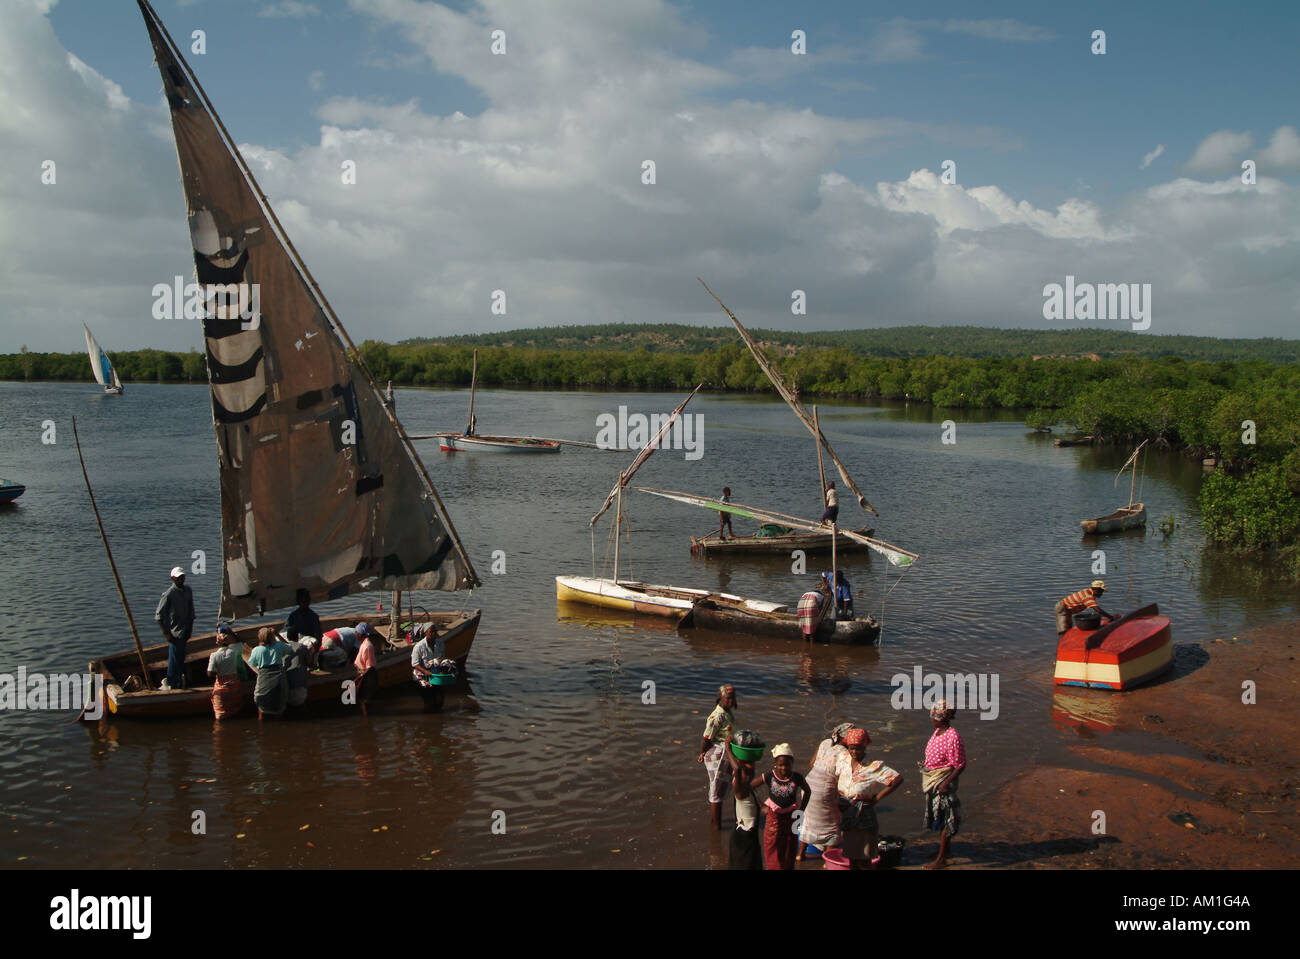 Sailing dhows moored in the mangrove forest for transportation to the mainland. Linga Linga, Inhambane, Mozambique, Stock Photo